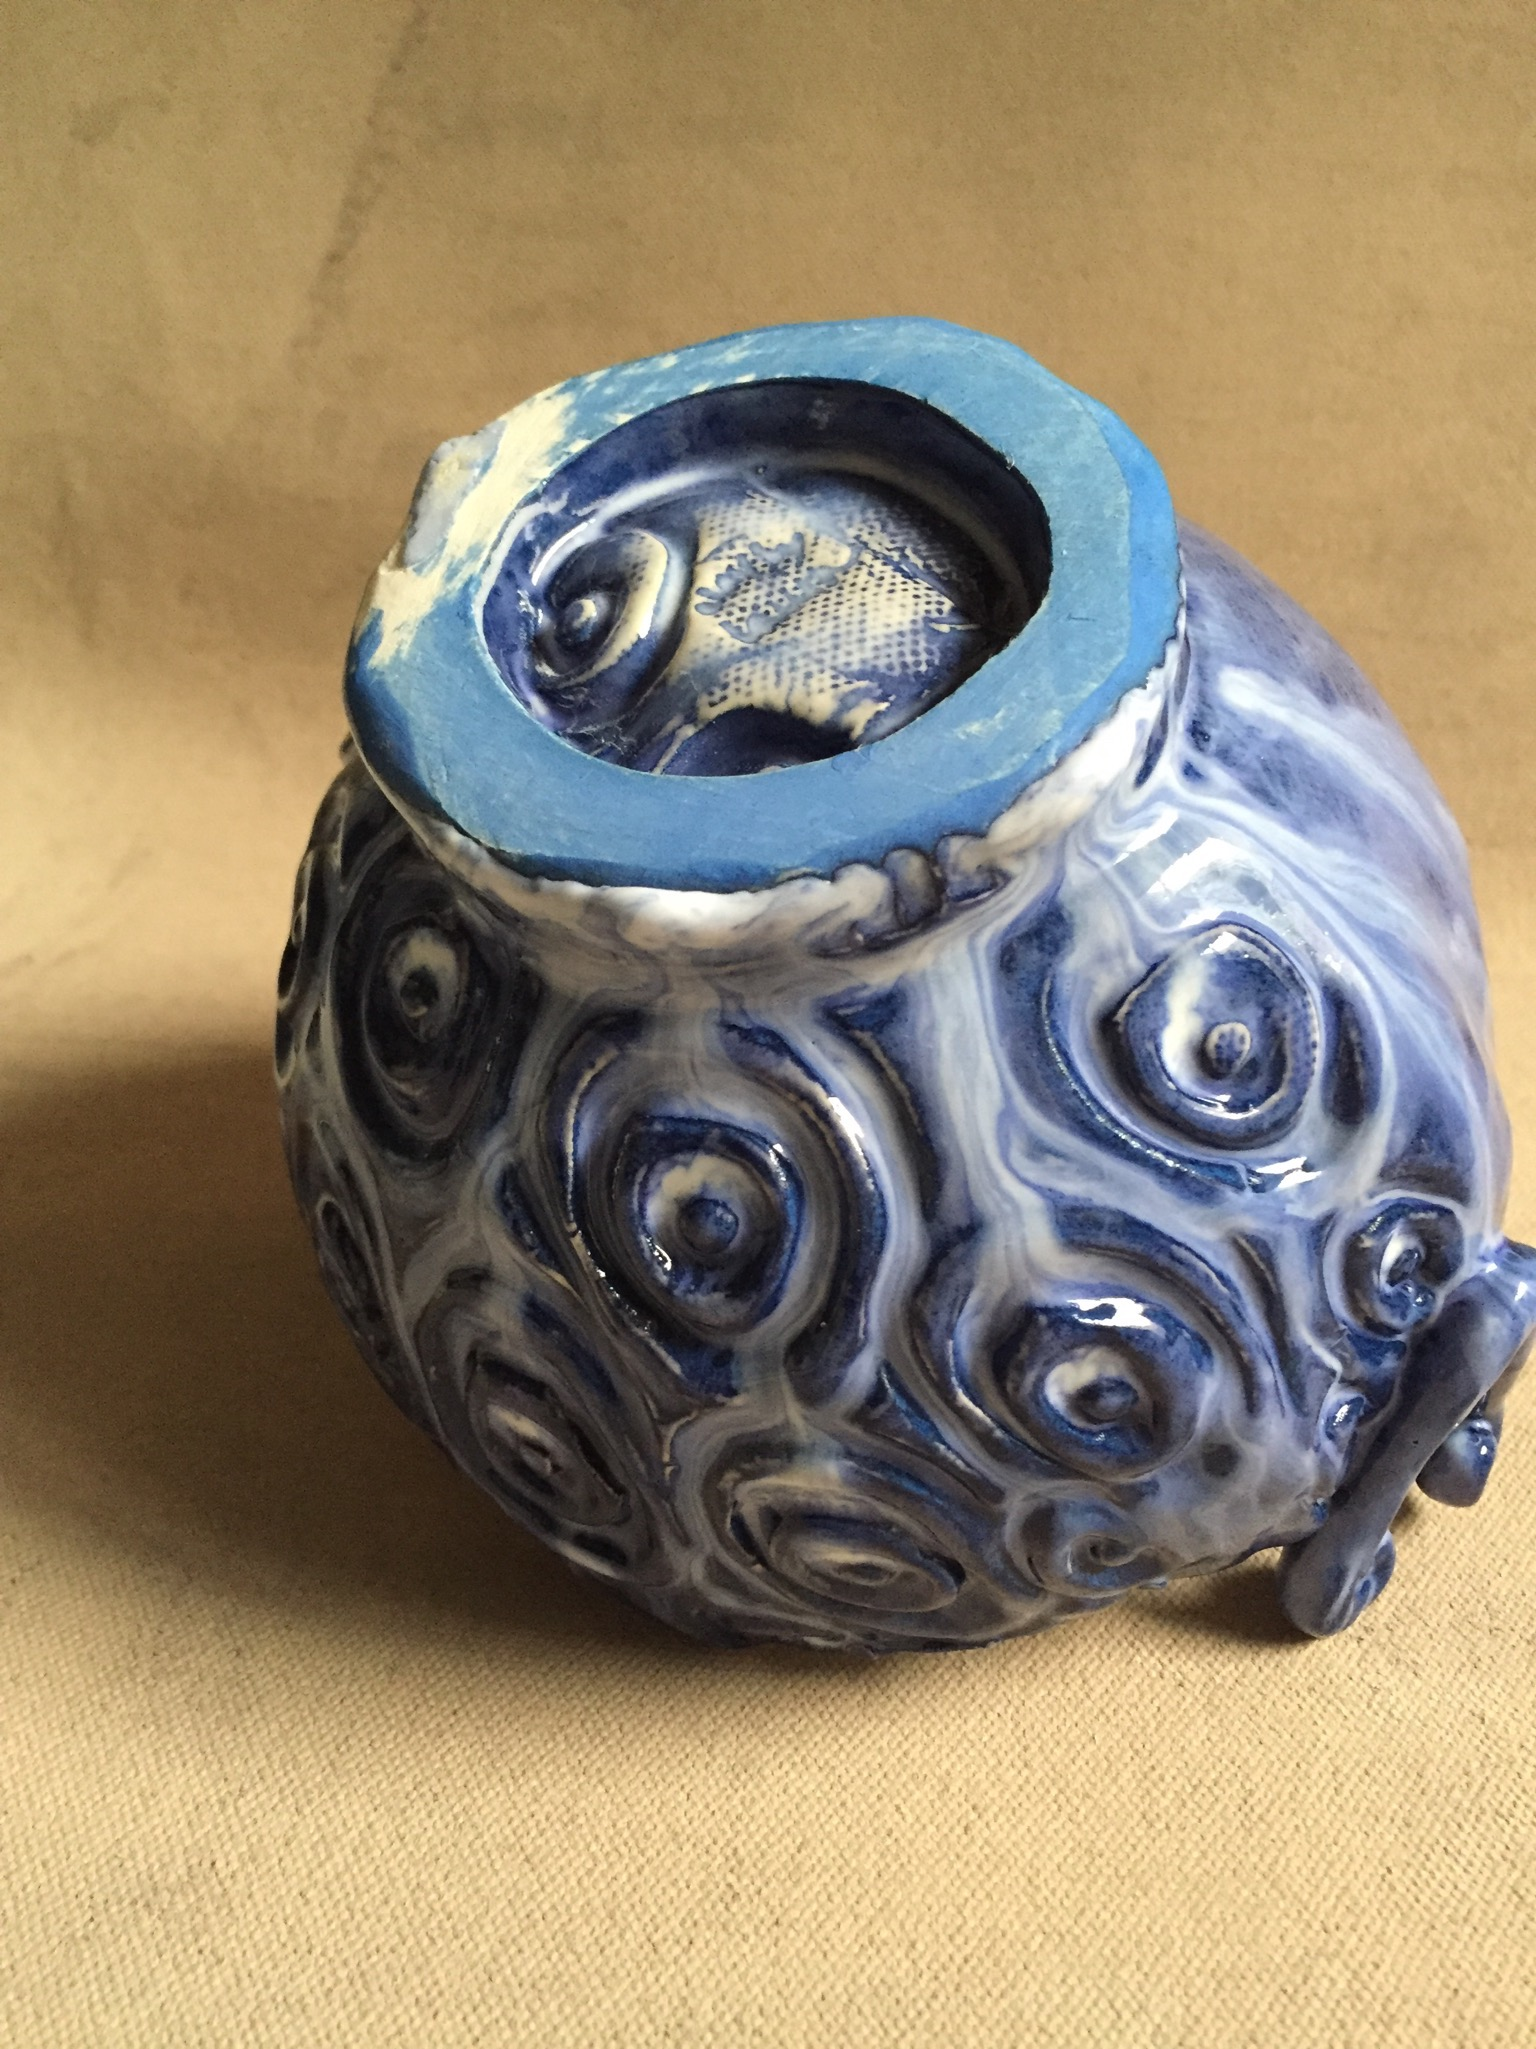 Here's one example of glaze running down the side of a pot and sticking to the shelf.